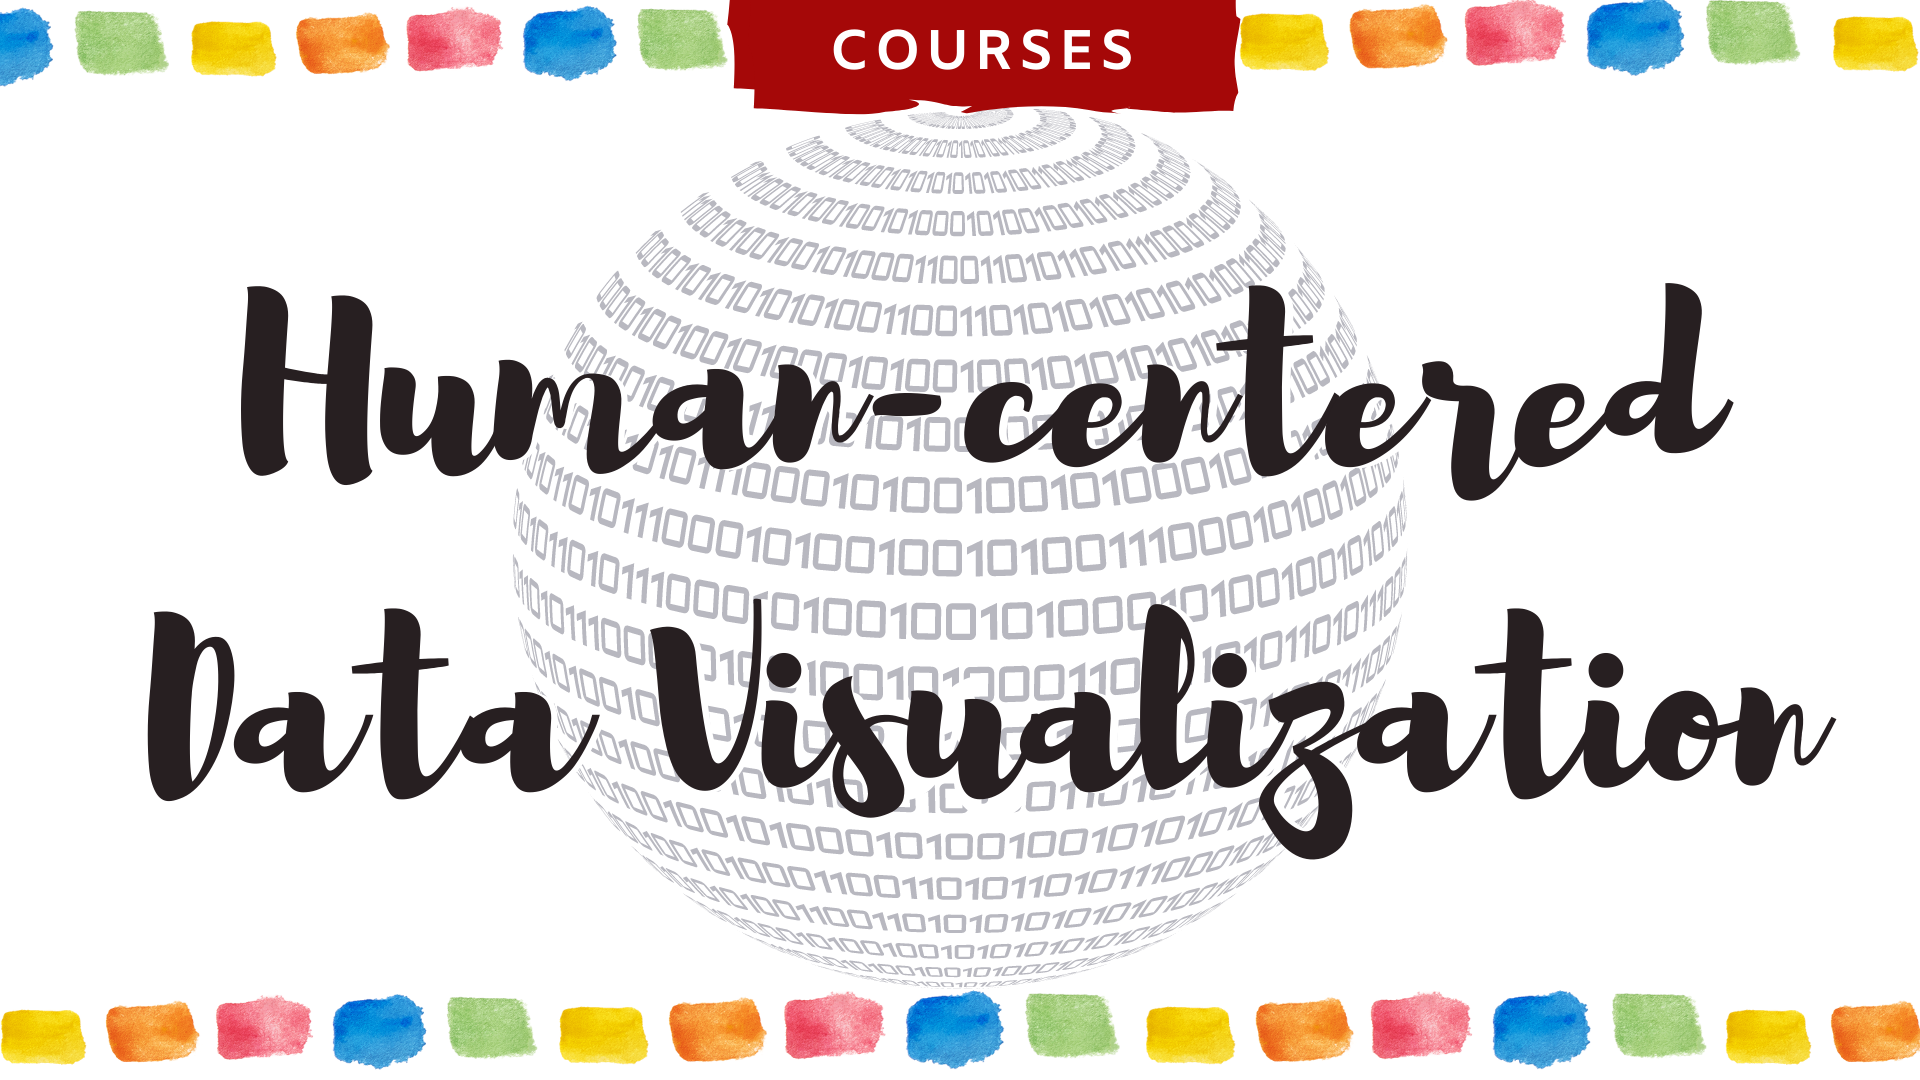 Human-centered Data Visualization against a sphere of binary code and watercolor bar chart outline. Banner Courses.